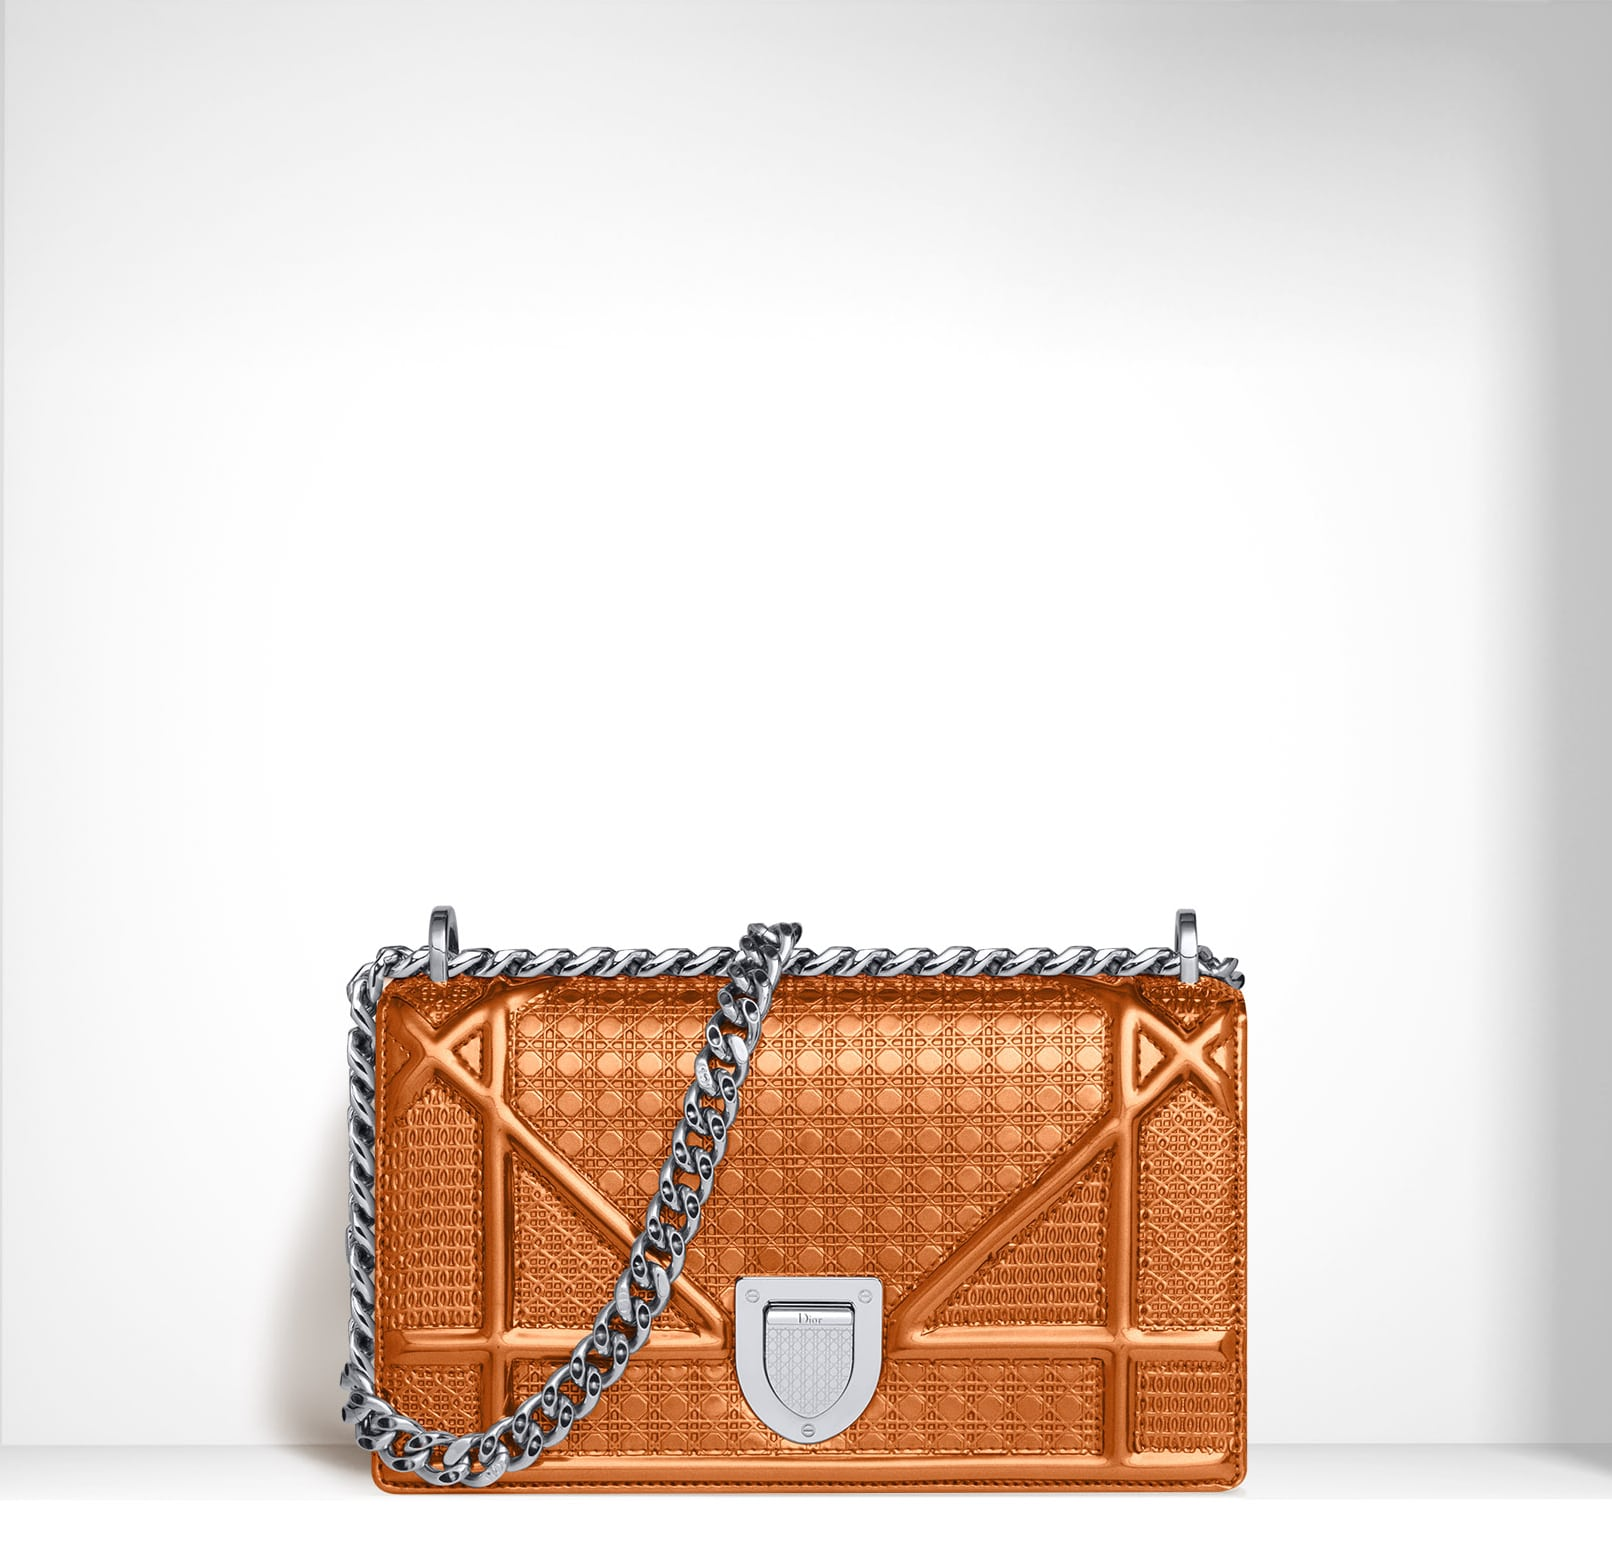 b2841f7eb2a8 Diorama and Lady Dior Metallic Perforated Bags from Pre-Fall 2015 ...